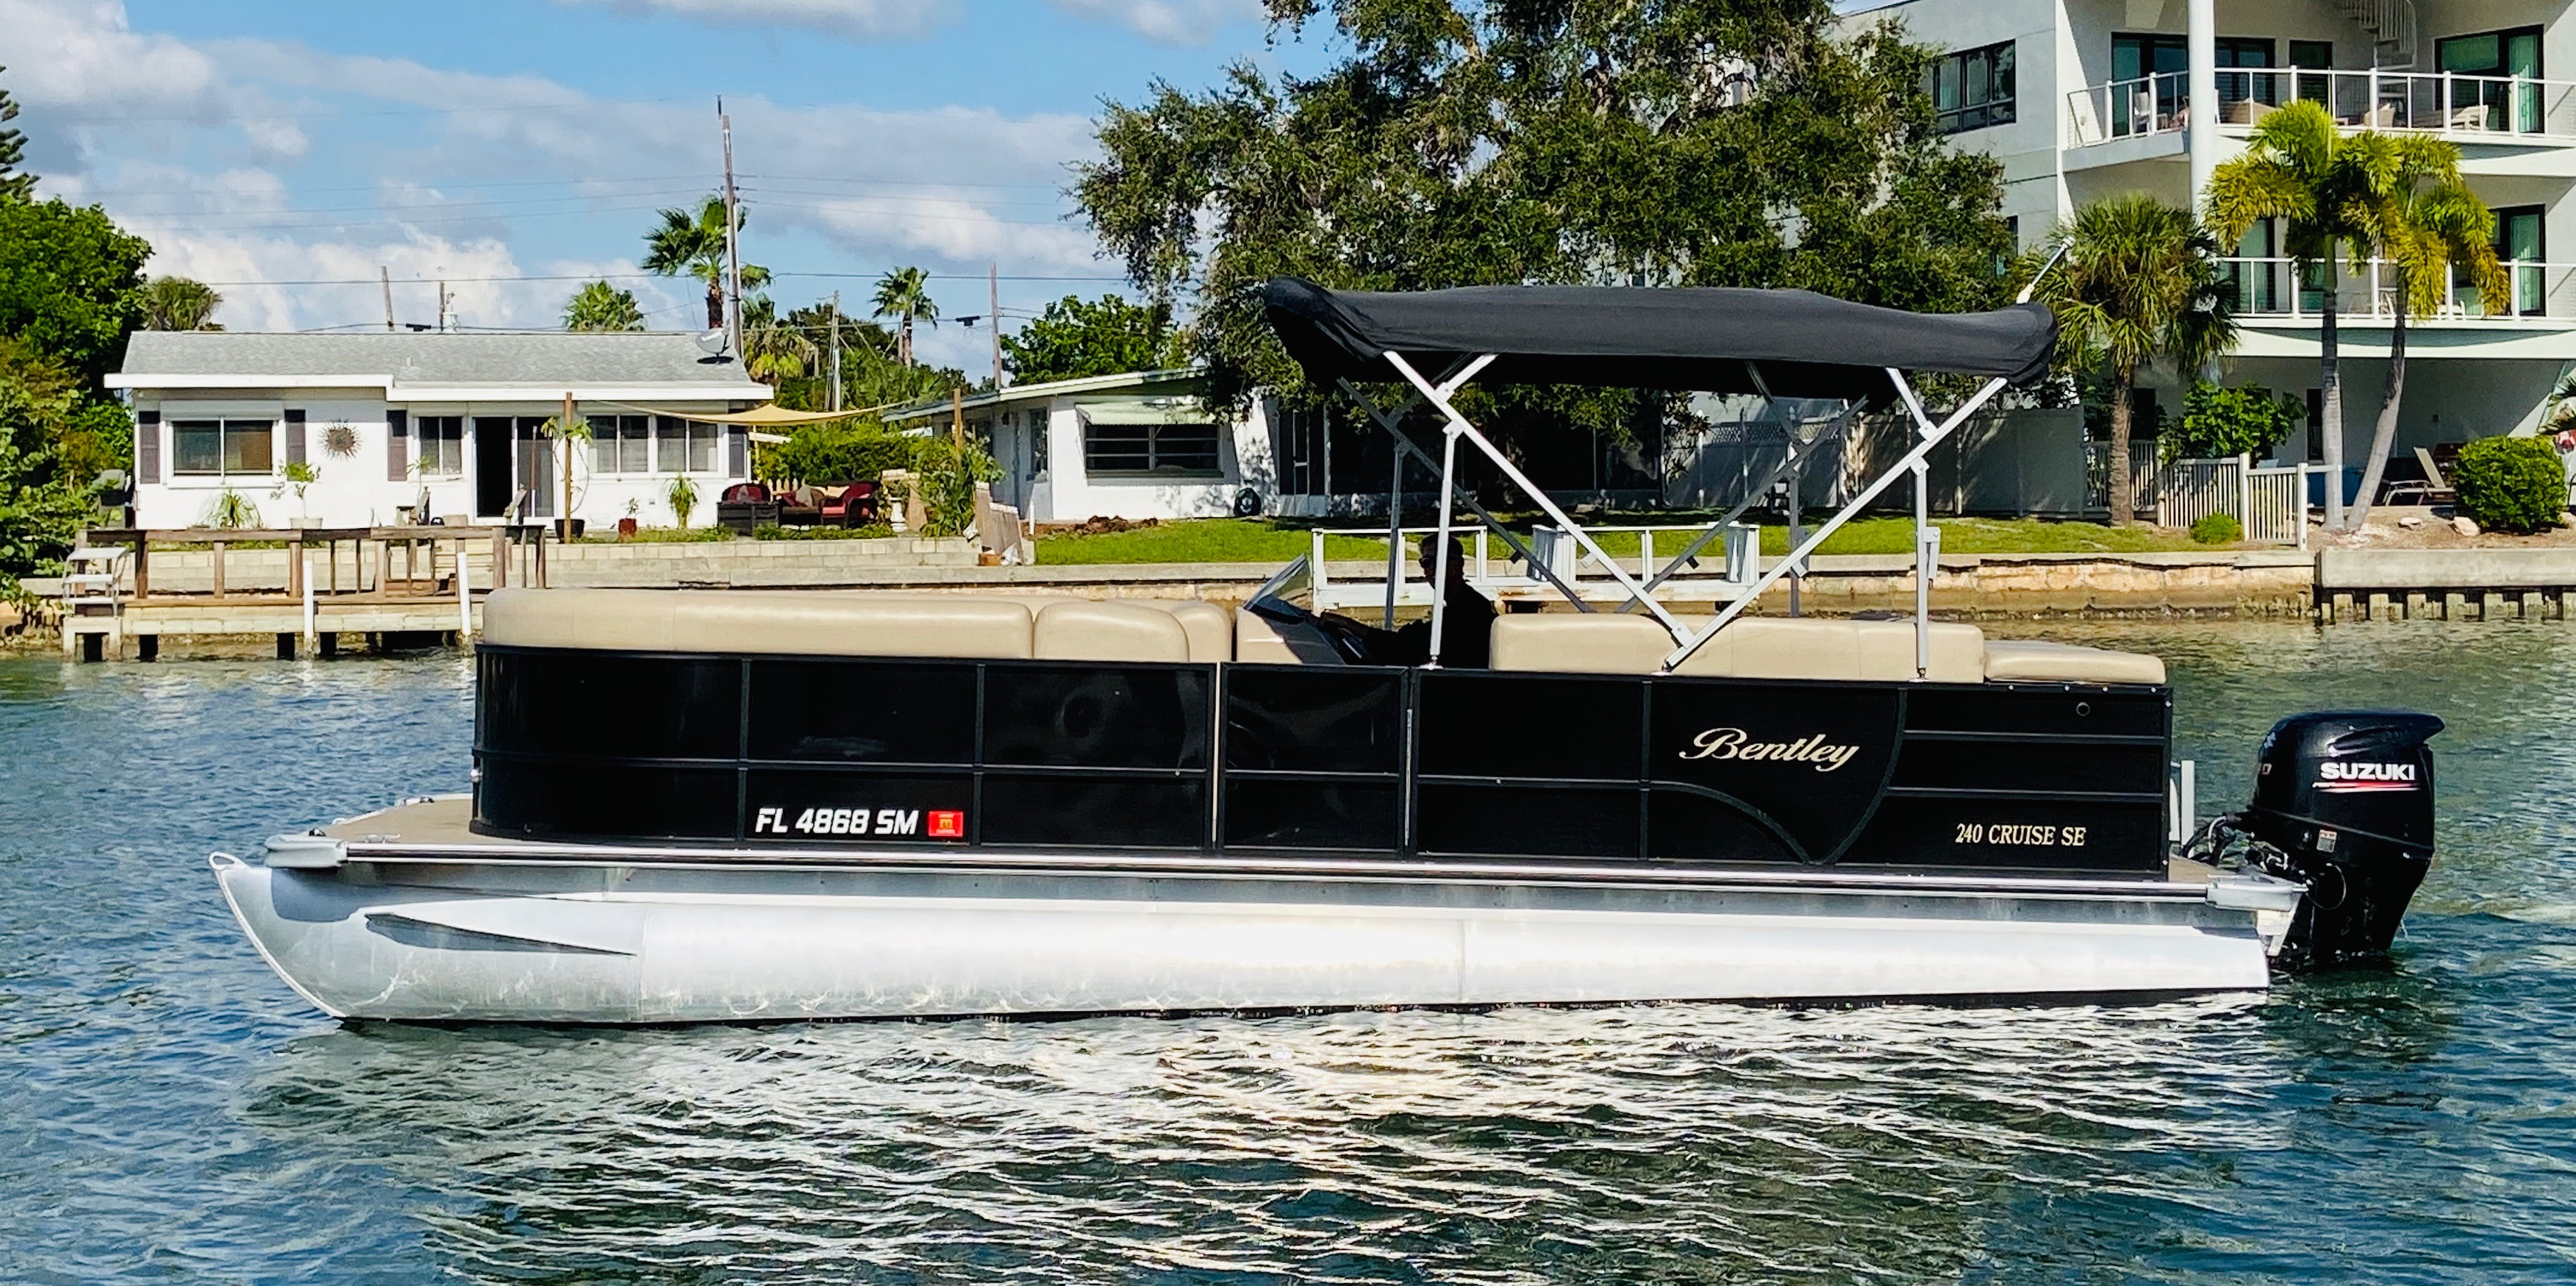 Pontoon Boat at Treasure Island Boat Rental Florida